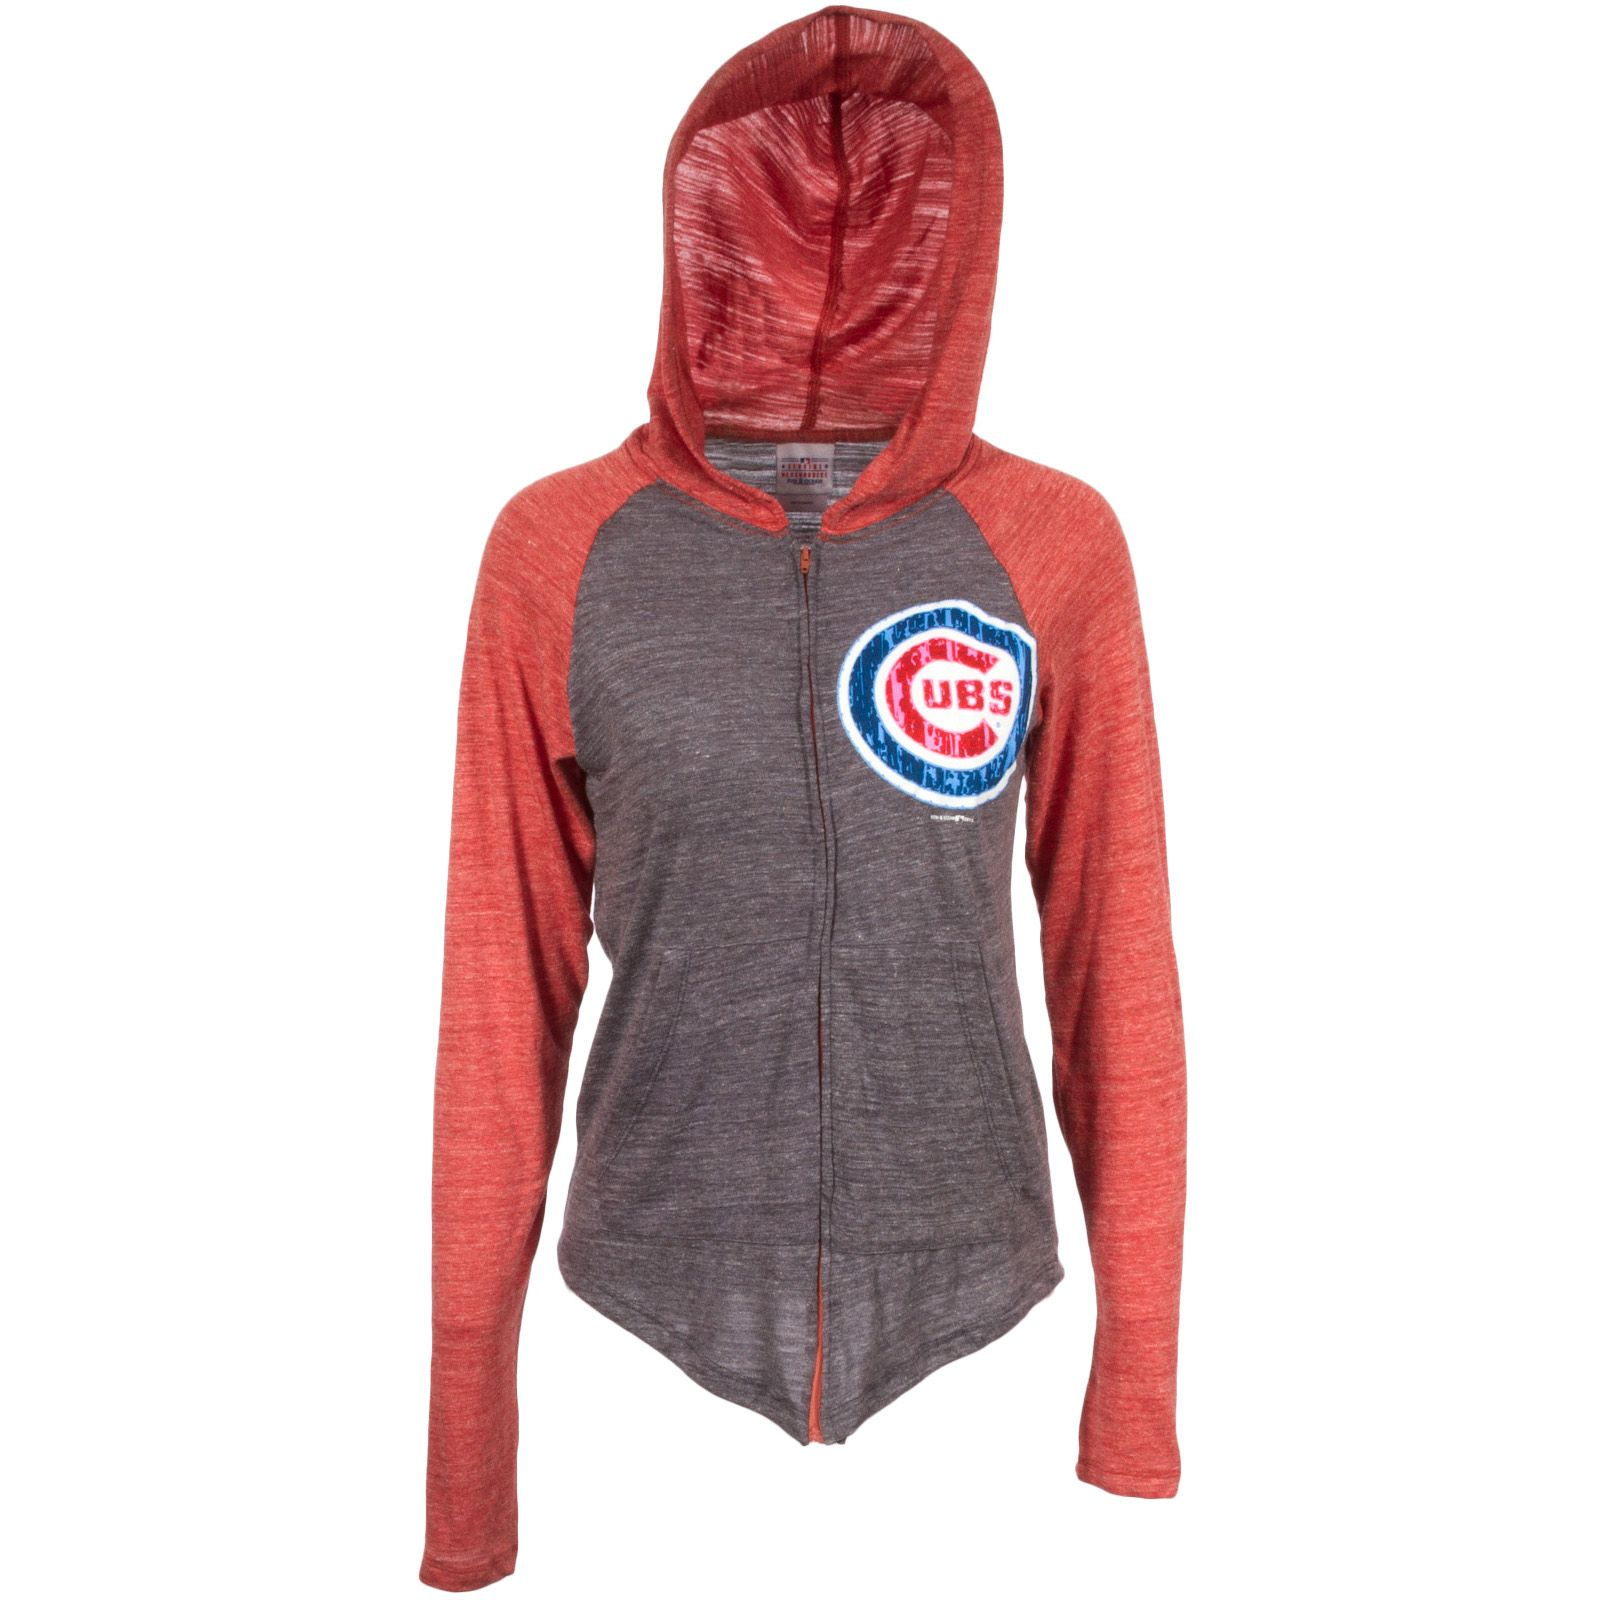 New 404 Page cannot be found | Chicago Cubs | Chicago cubs hoodie  free shipping